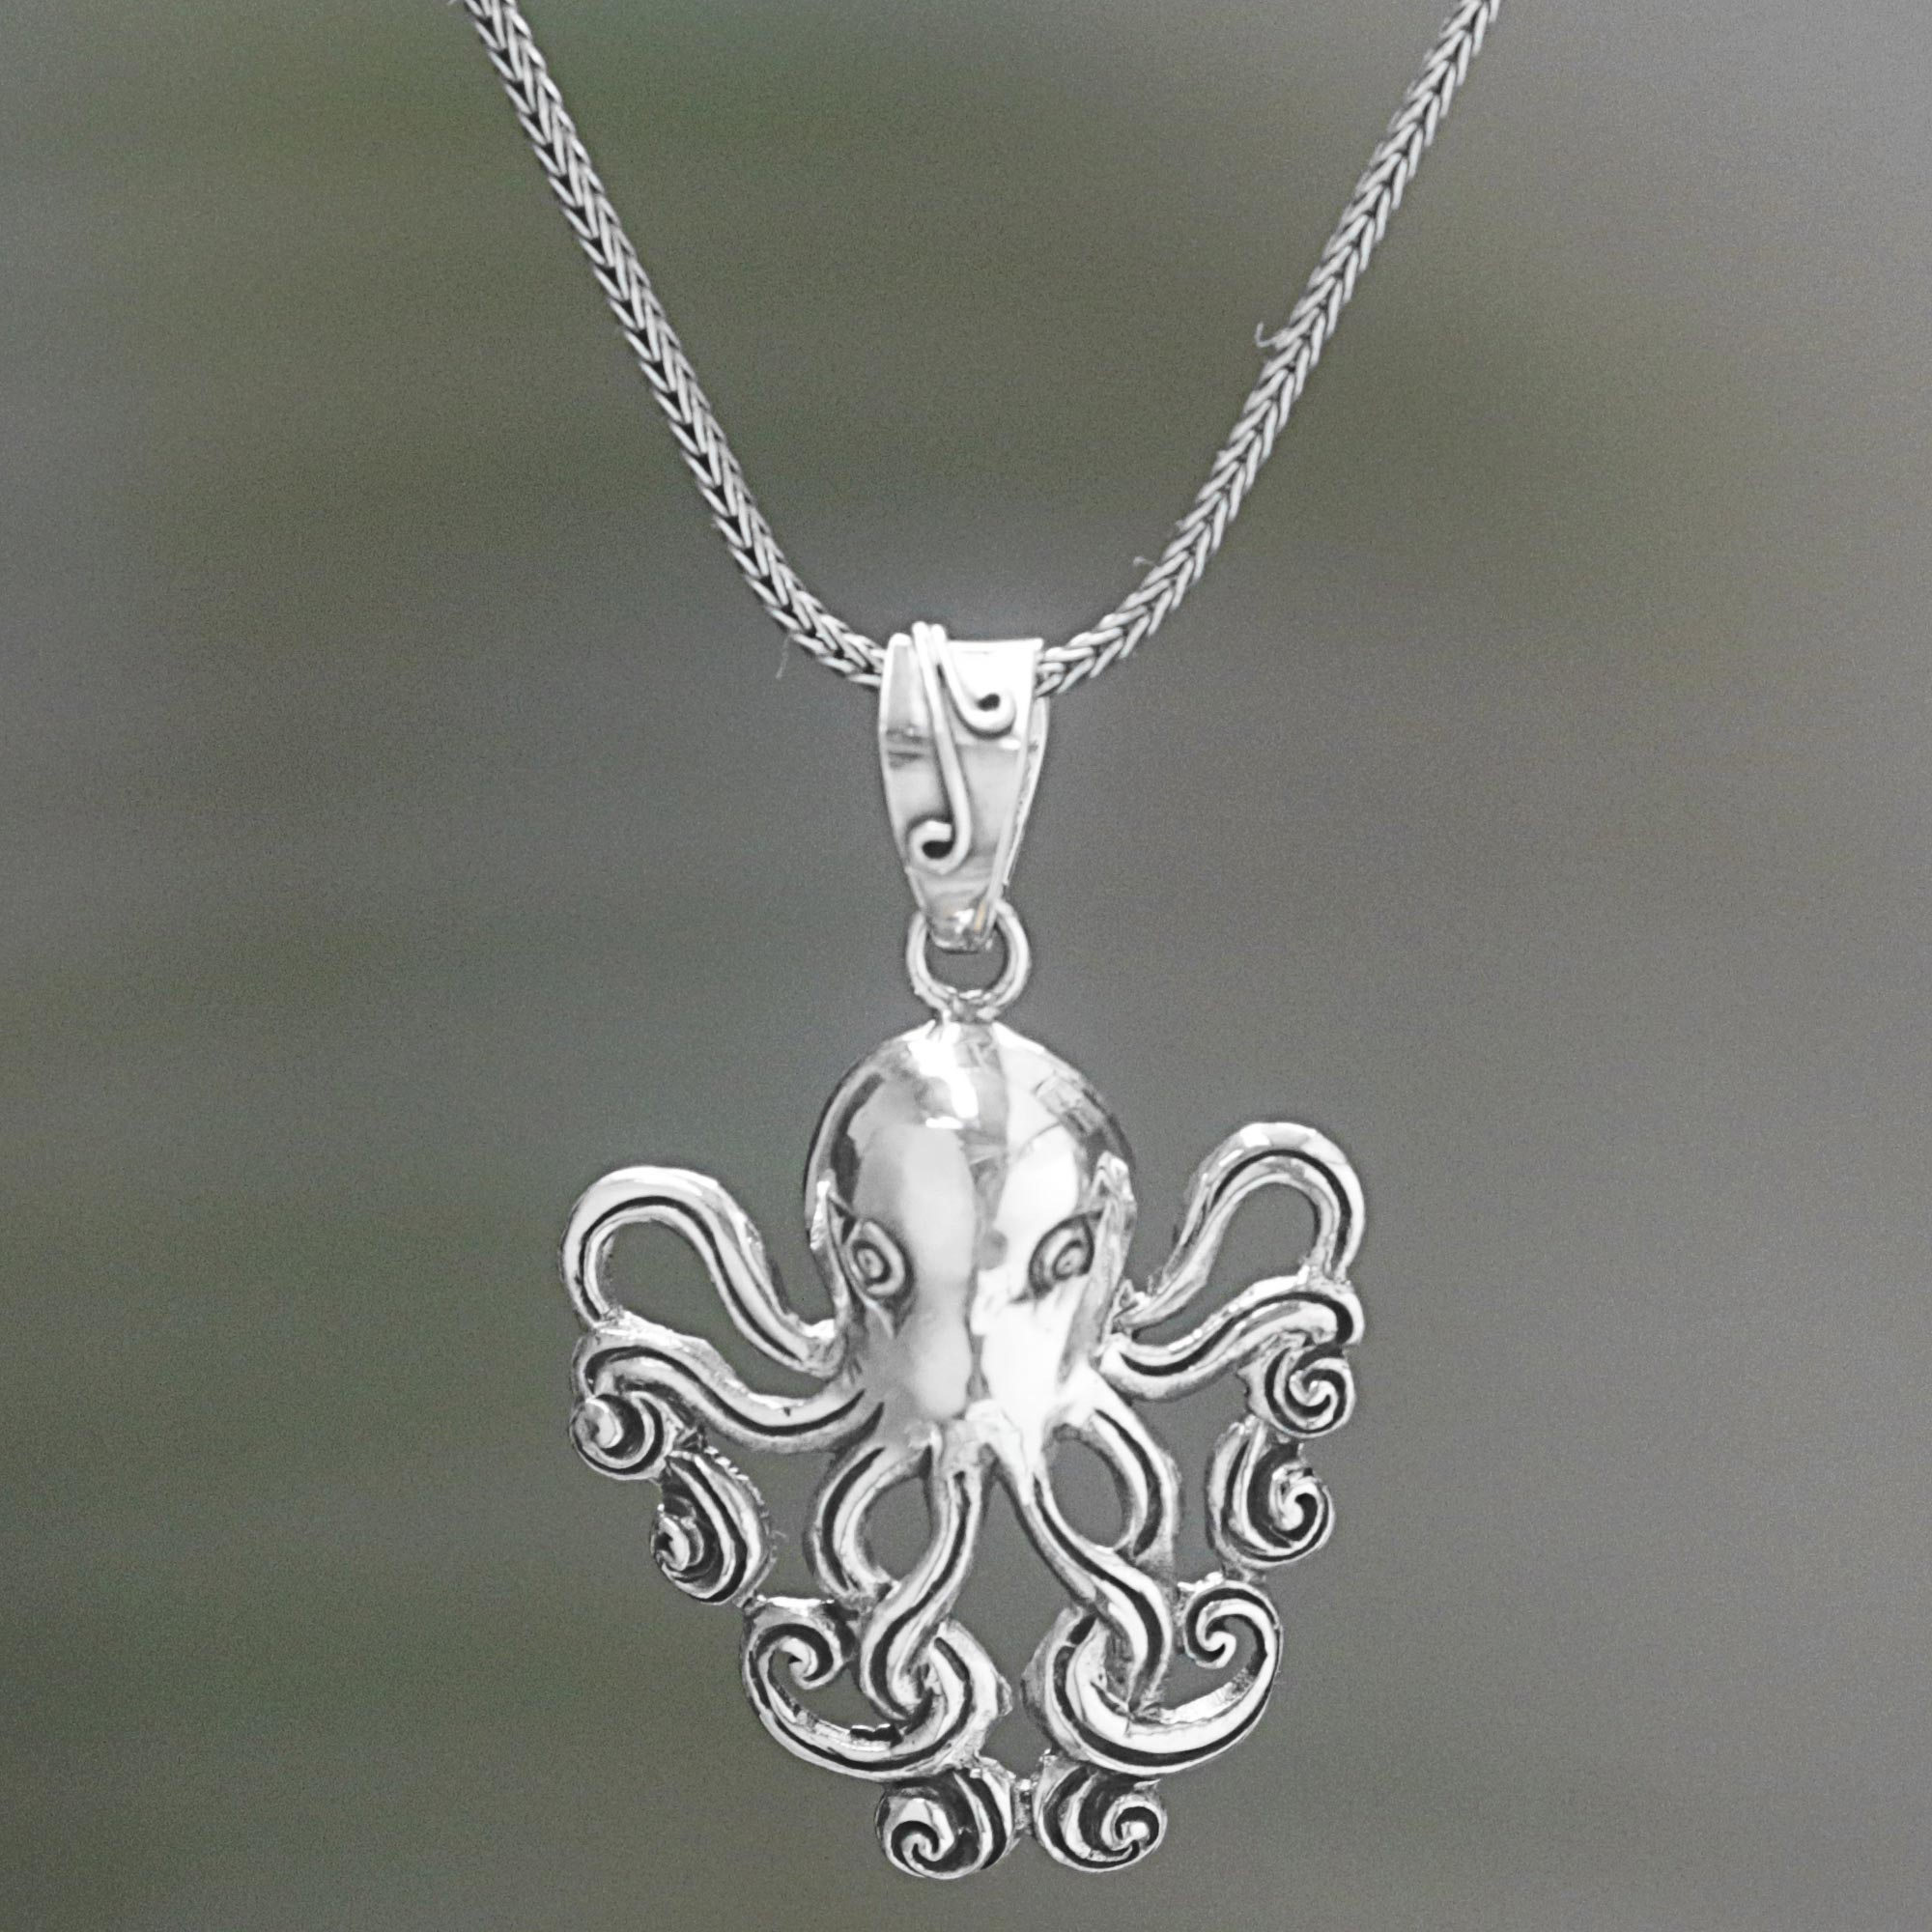 stl octopus jewelry model pendants models print pendant original